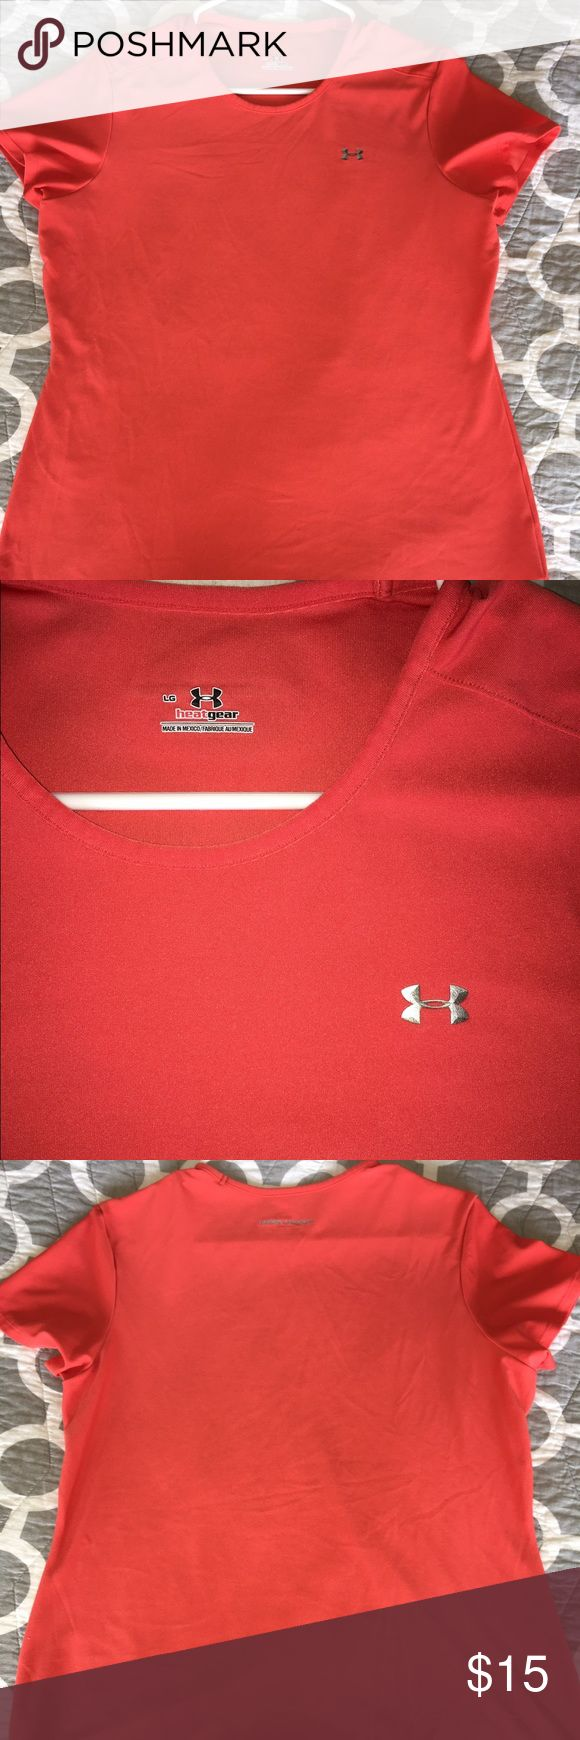 Under Amour heat gear size large coral tshirt Under Amour heat gear size large coral tshirt Under Armour Tops